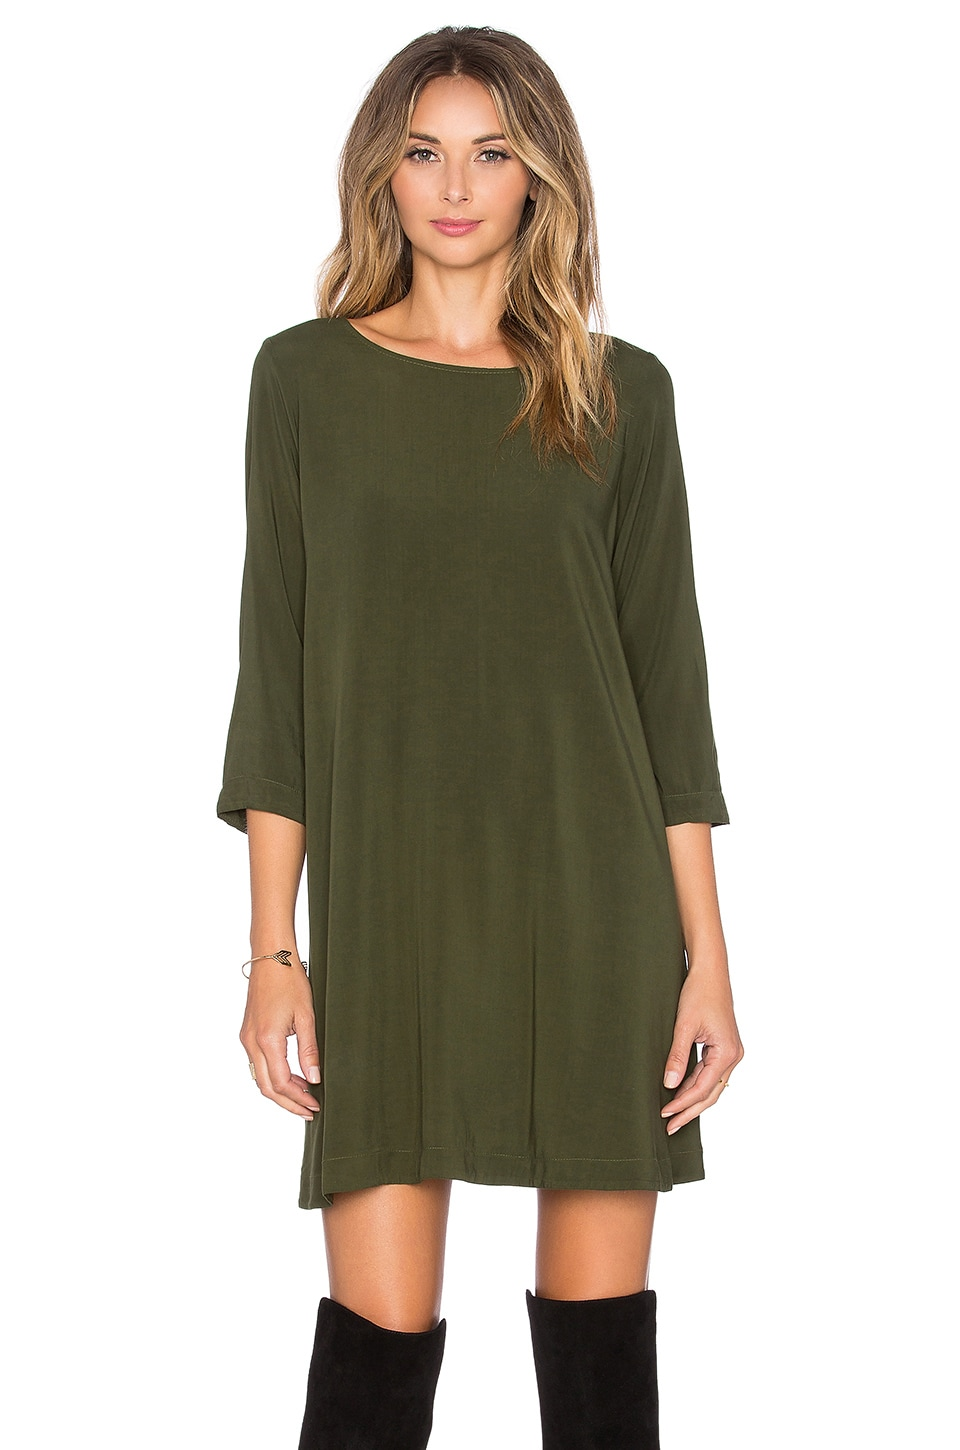 Michael Stars 3/4 Sleeve Crewneck Mini Dress in Combat